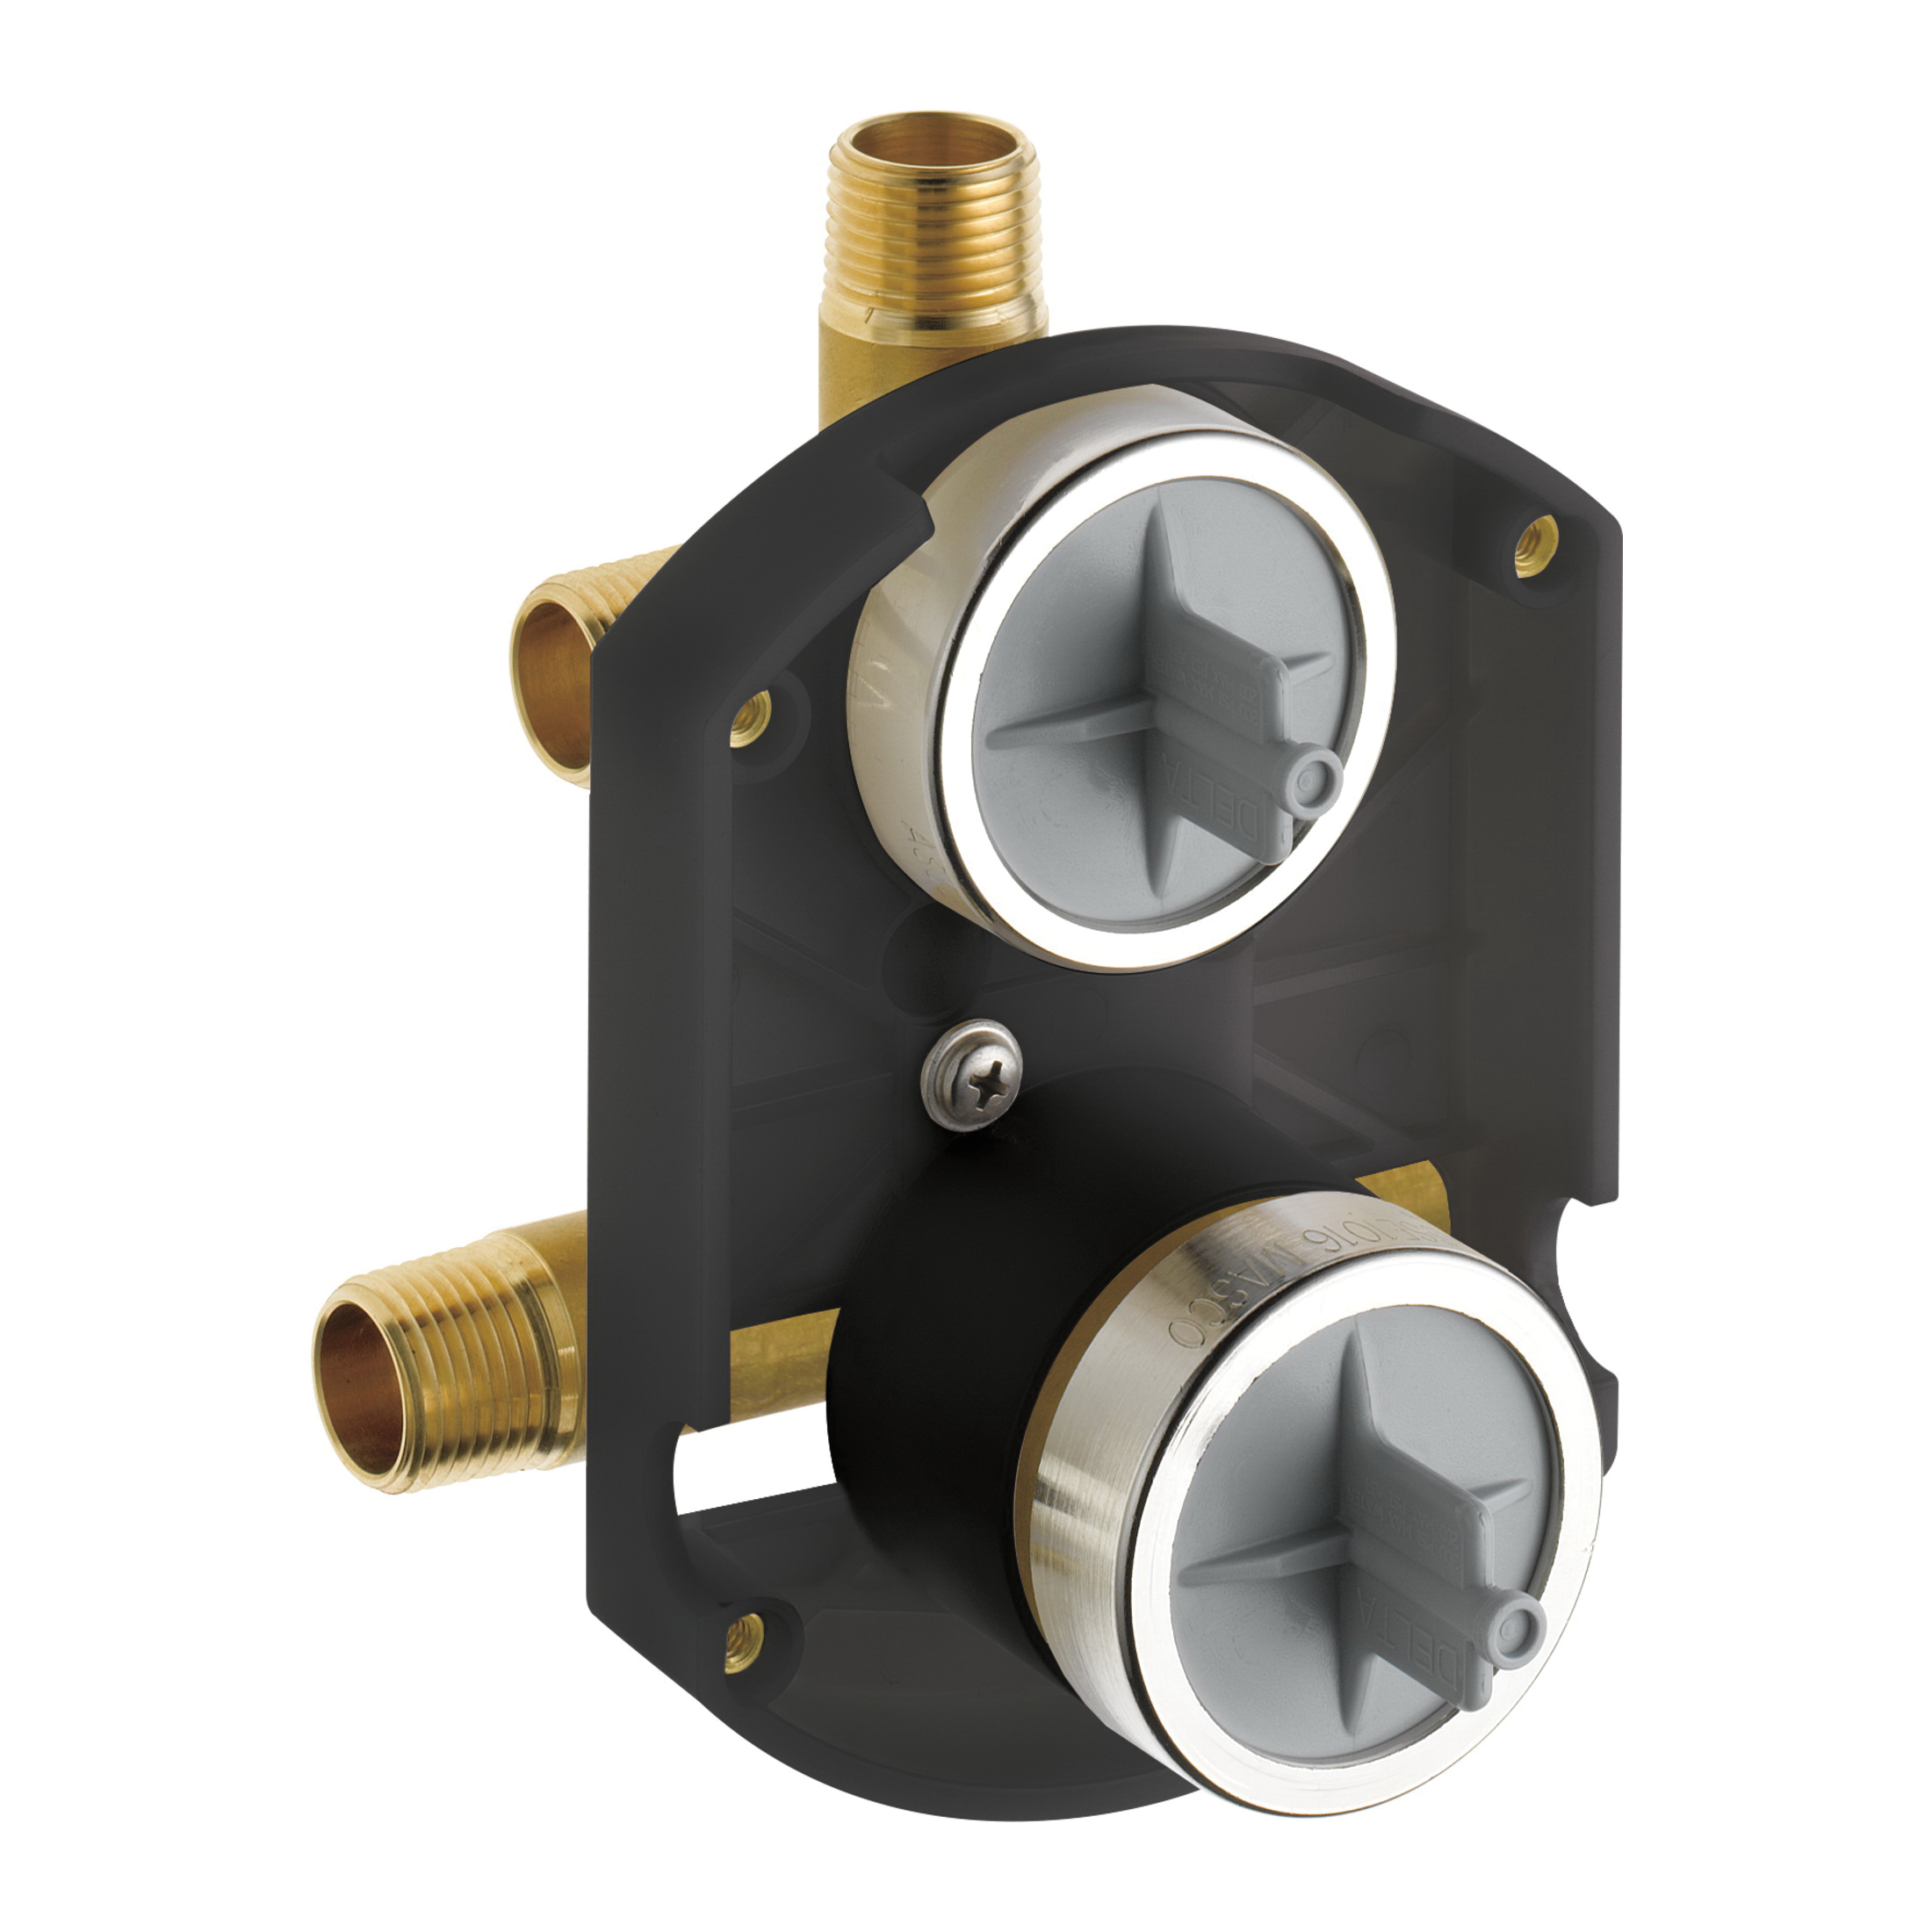 Consolidated Supply Co. | Shower/Tub Valve Accessories & Parts